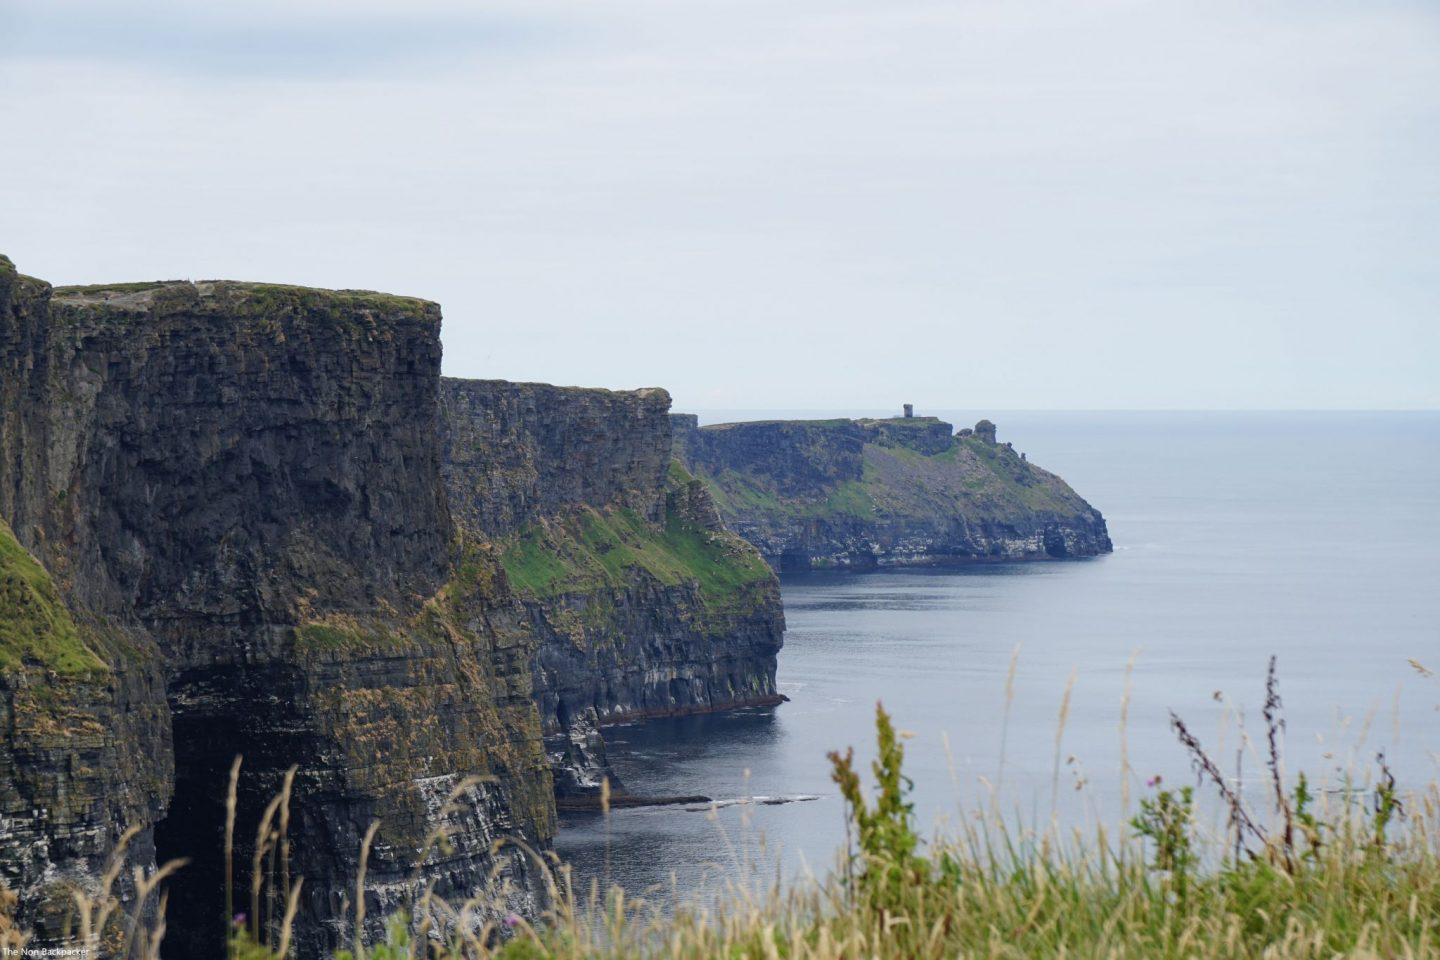 A walk along The Cliffs of Moher